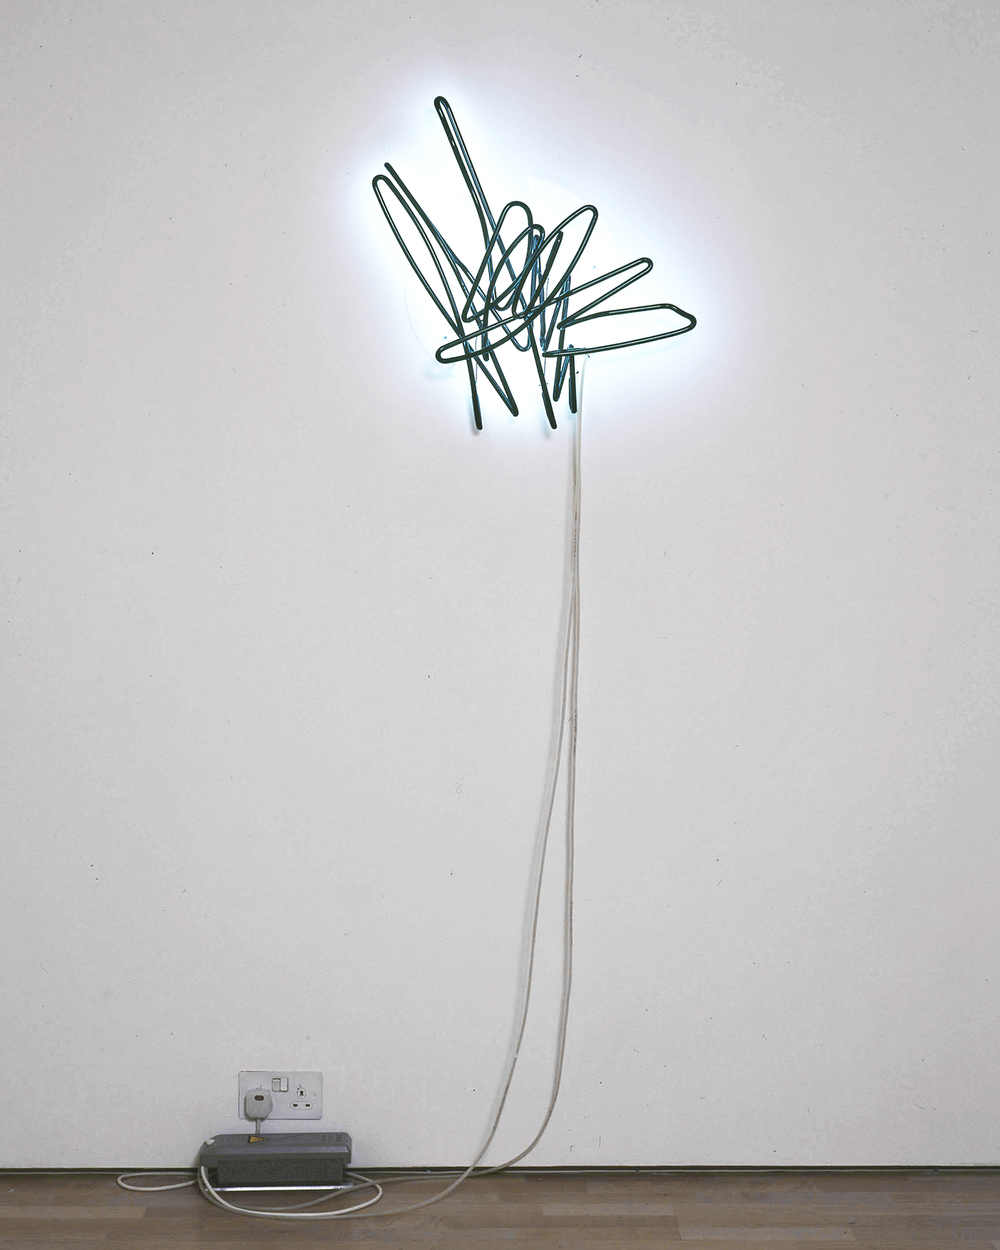 stefan bruggemann  obliterated neon  neon  variable dimensions  2012